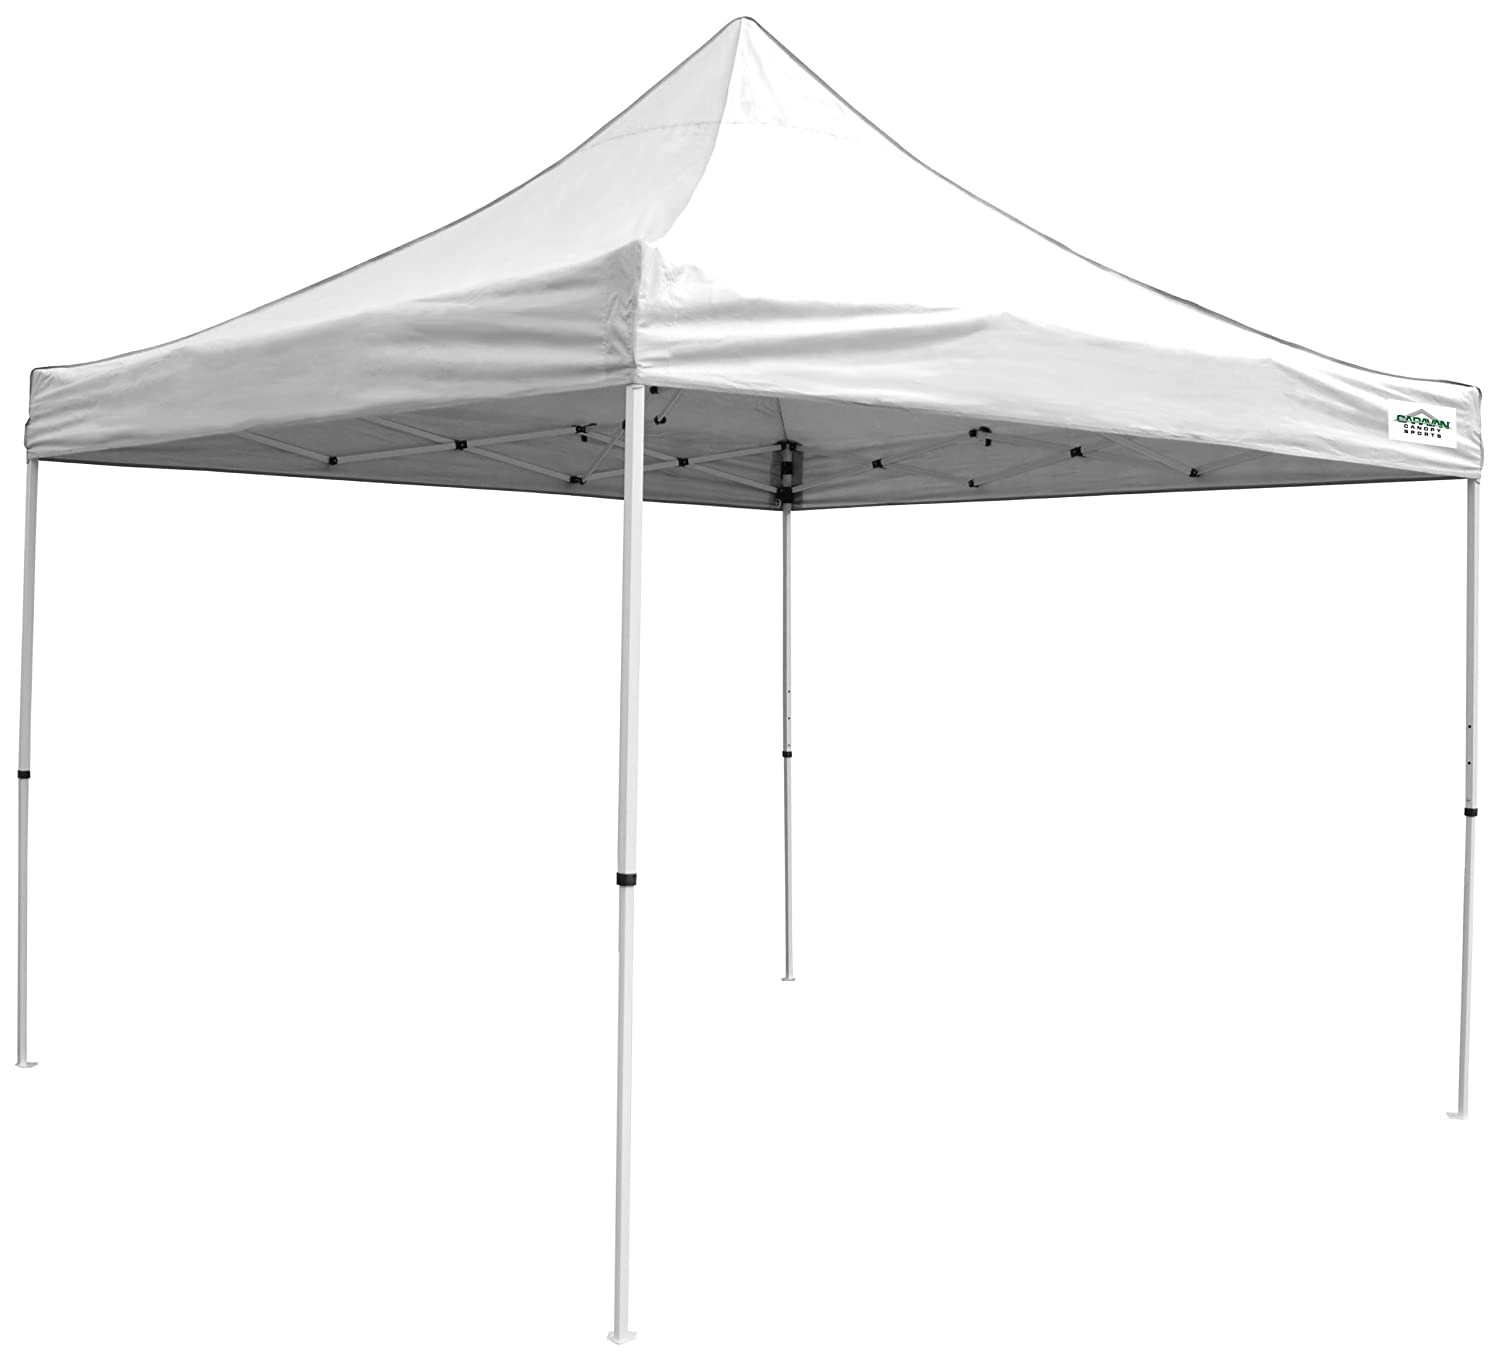 Amazon.com  Caravan Canopy M-Series 2 Pro 10 X 10 Foot Straight Leg Canopy Kit White  Garden u0026 Outdoor  sc 1 st  Amazon.com & Amazon.com : Caravan Canopy M-Series 2 Pro 10 X 10 Foot Straight ...